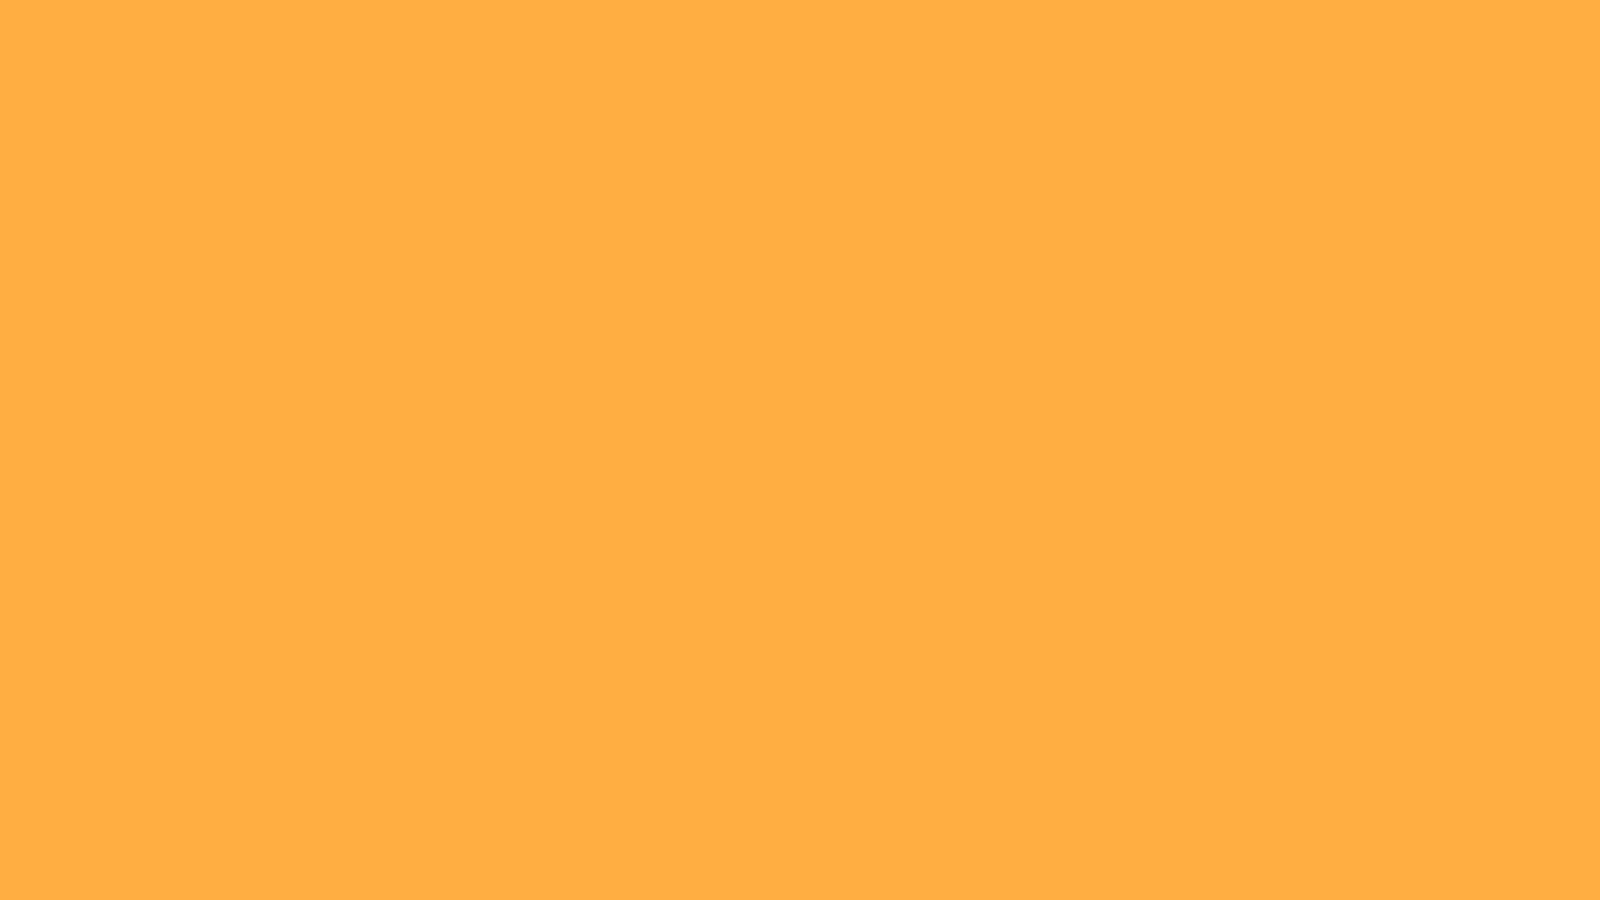 1600x900 Yellow Orange Solid Color Background